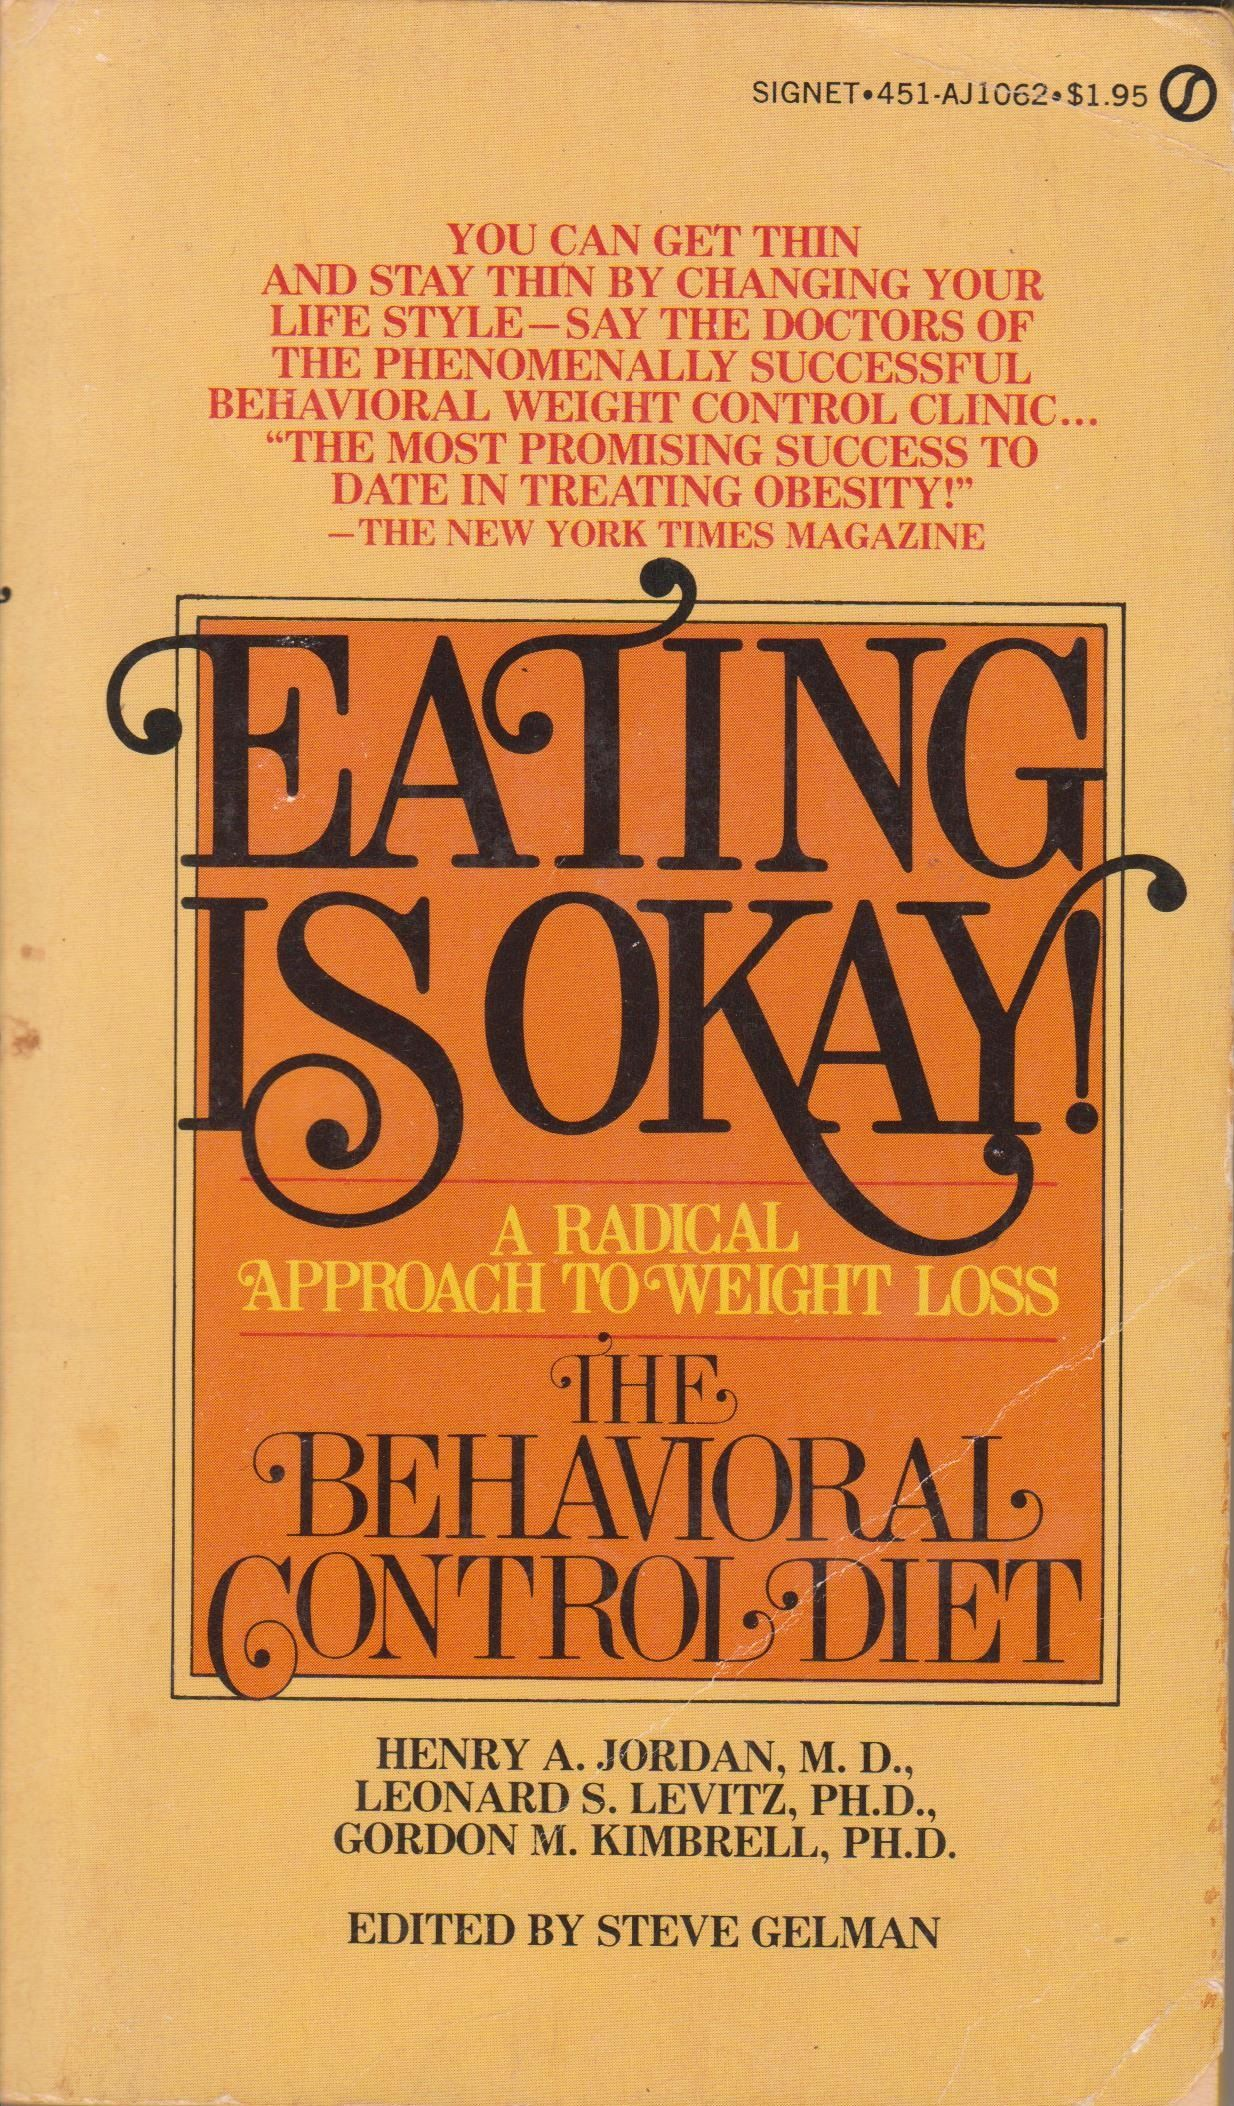 Eating Is Okay: A Radical Approach To Weight Loss by Jordan, Levitz, and Kimbrell 1976